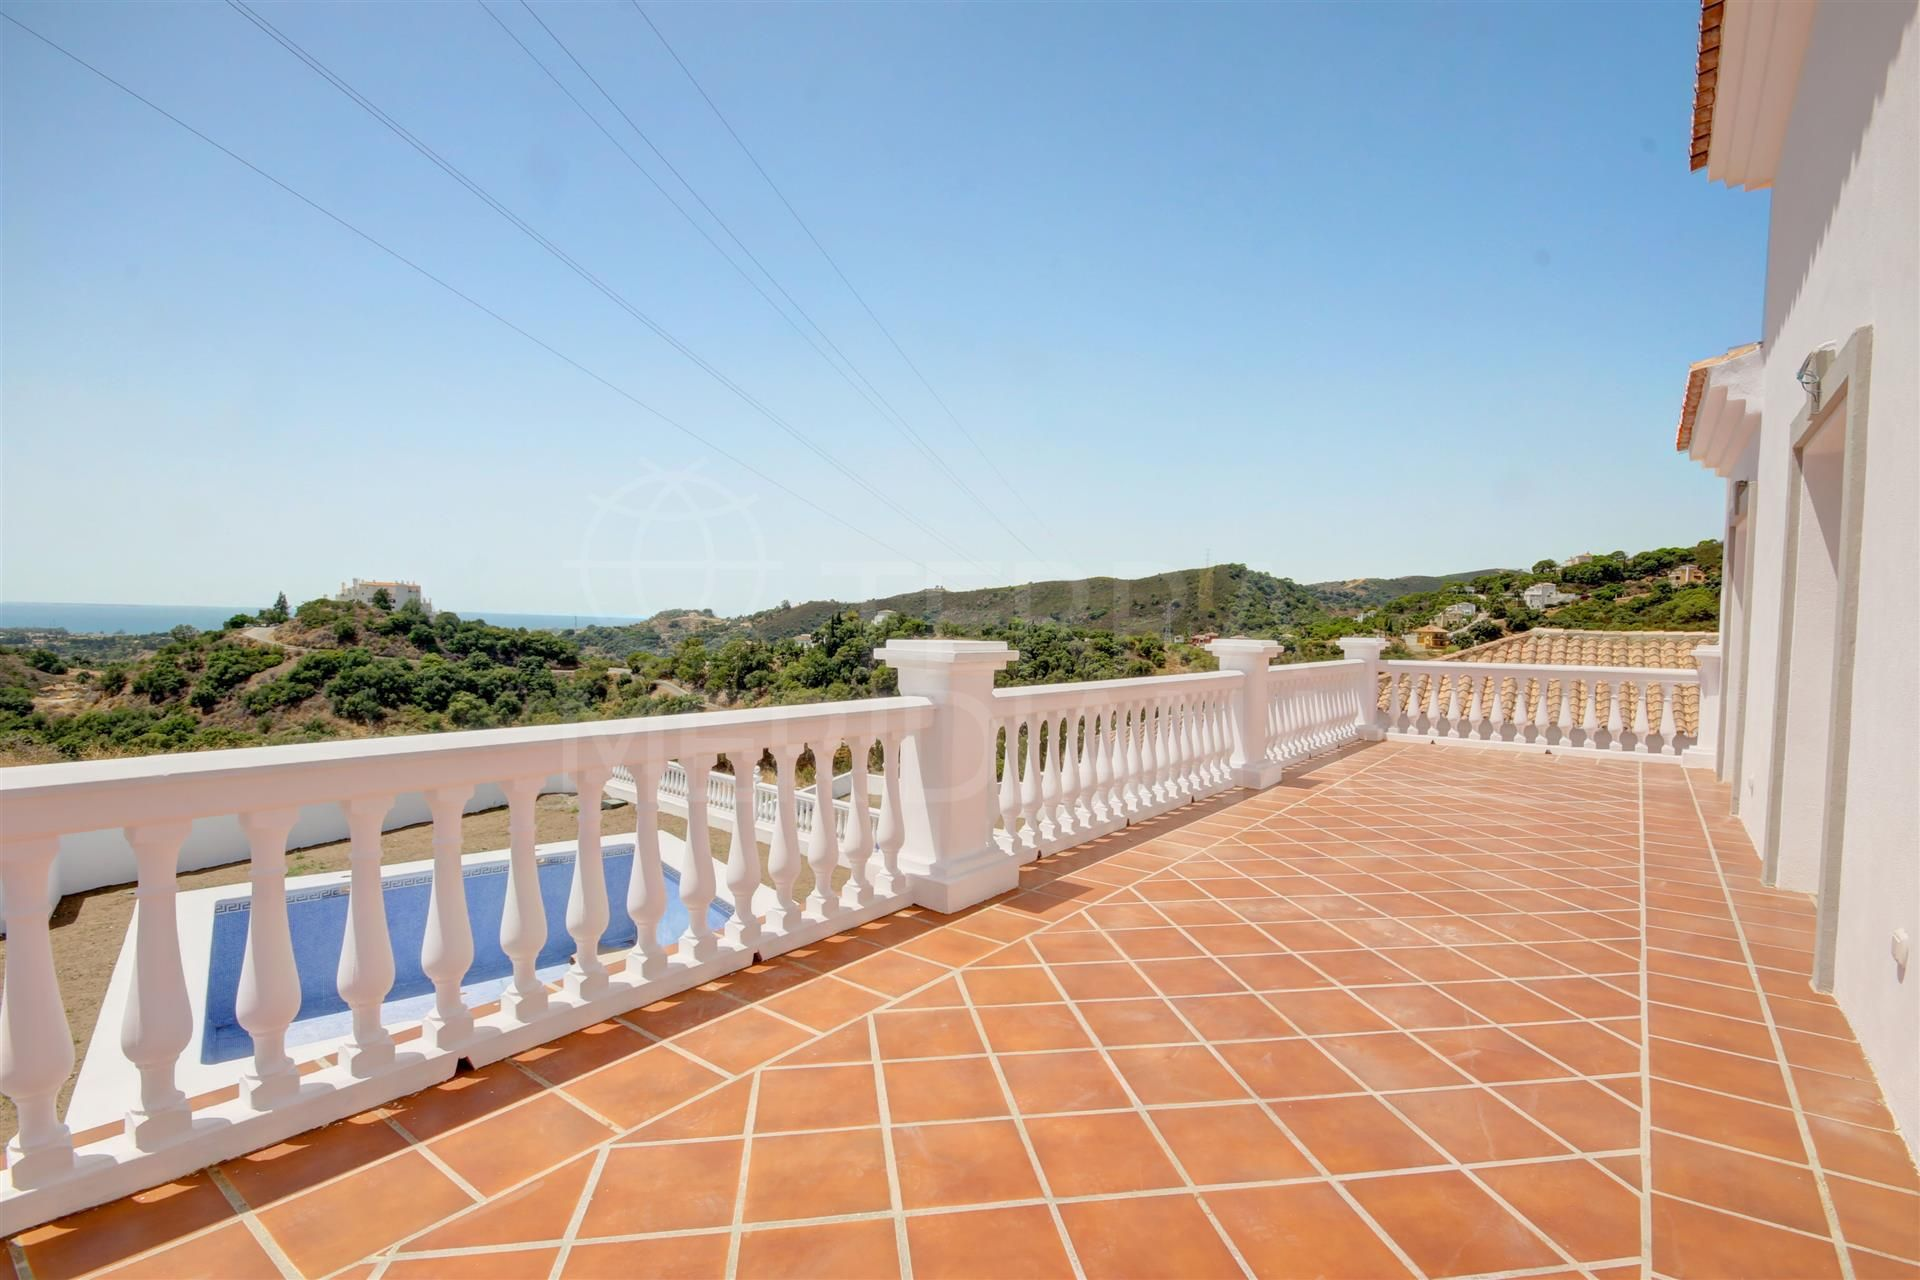 Development Opportunity - 4 brand new villas for sale in Forest Hills, with open views to the sea